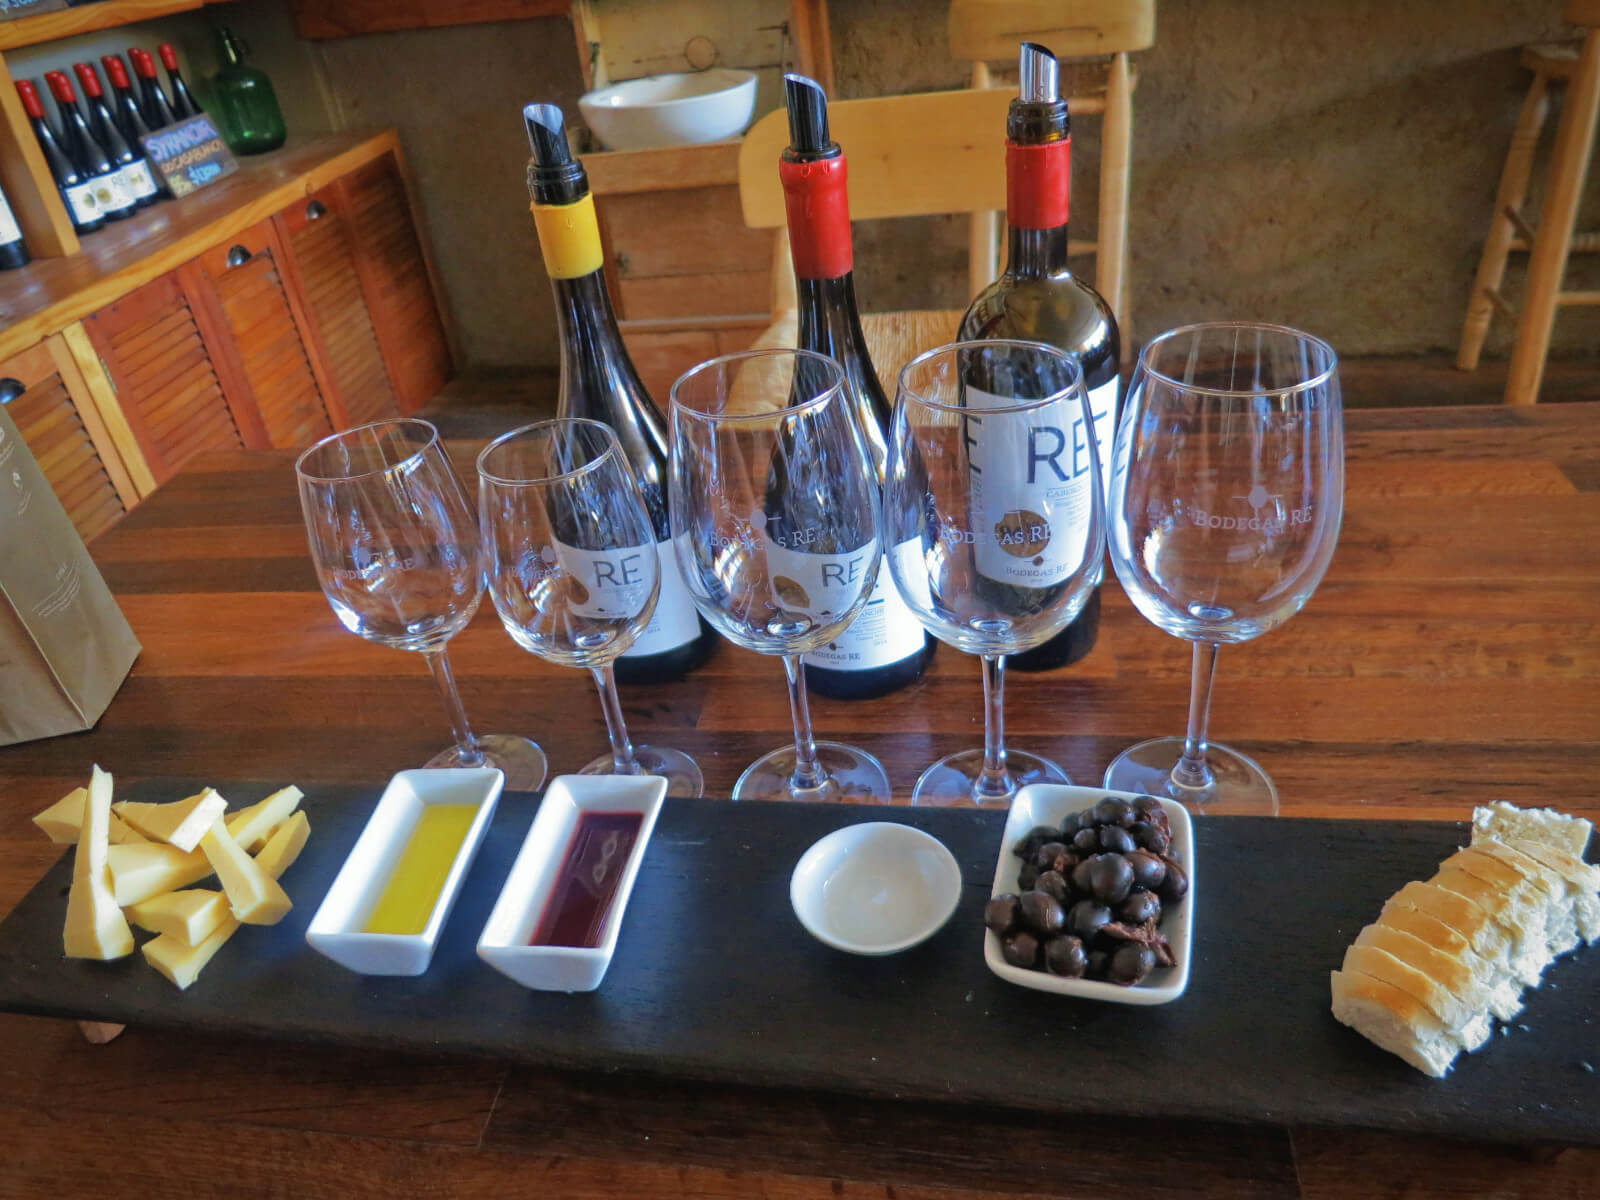 Wine tasting and pairing at Bodegas Re in the Casablanca Wine Region of Chile! Part of our budget-friendly day of wine tasting in Valparaiso without a tour!